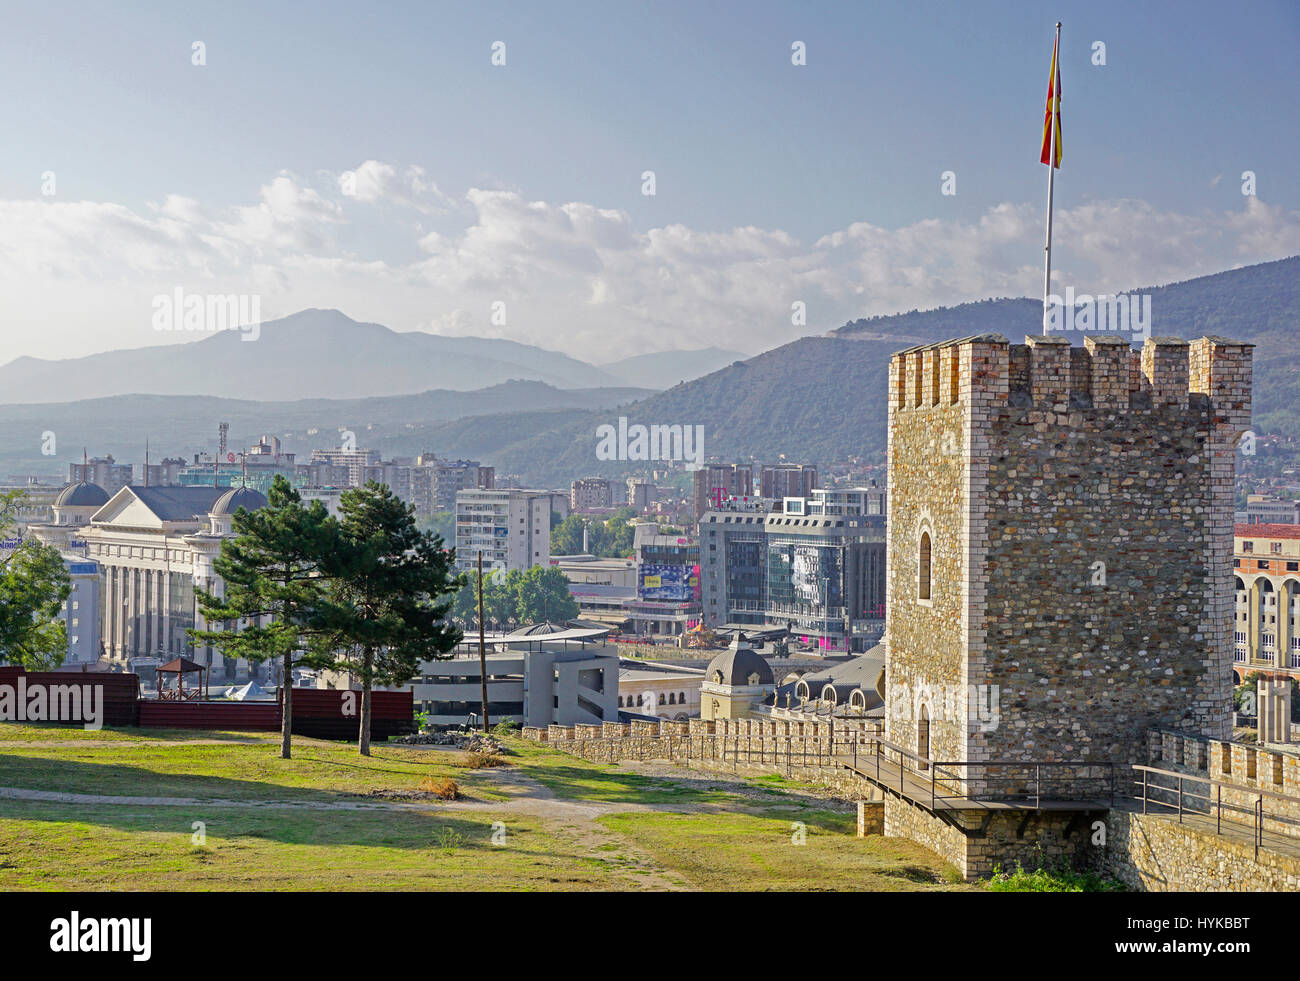 Overview of city of Skopje with wall and watch tower of Skopje Fortress. - Stock Image